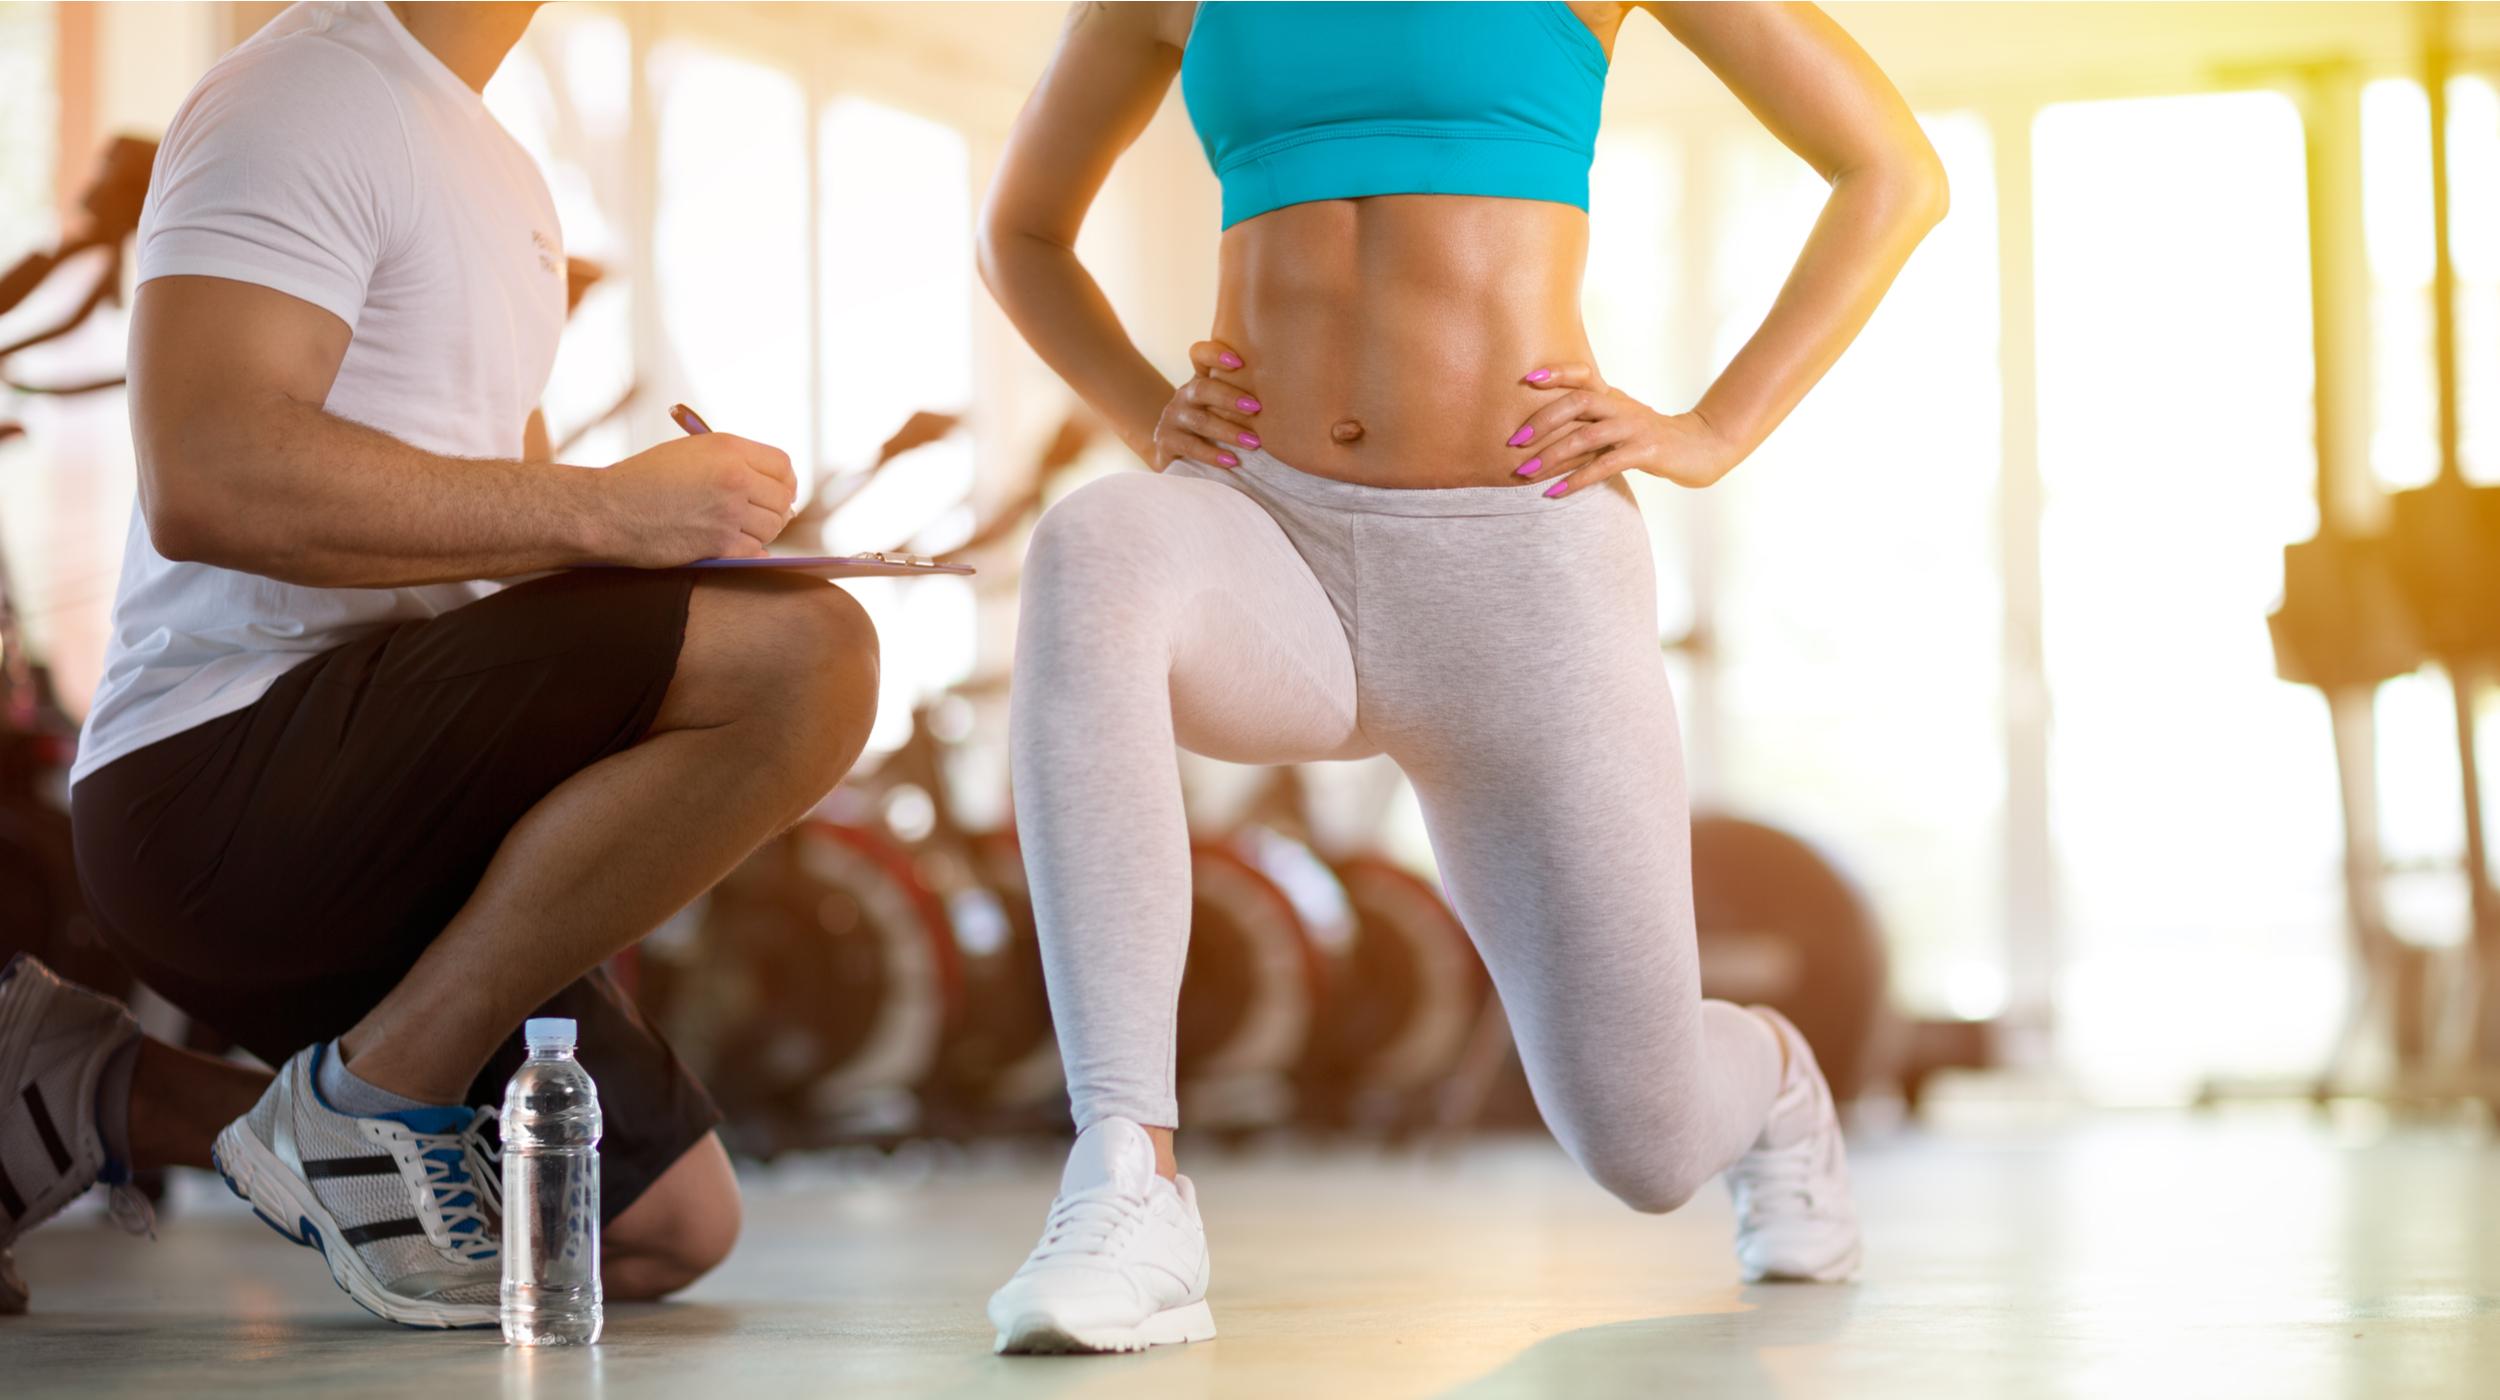 What You Need to Know if You Want to Hire a Personal Trainer